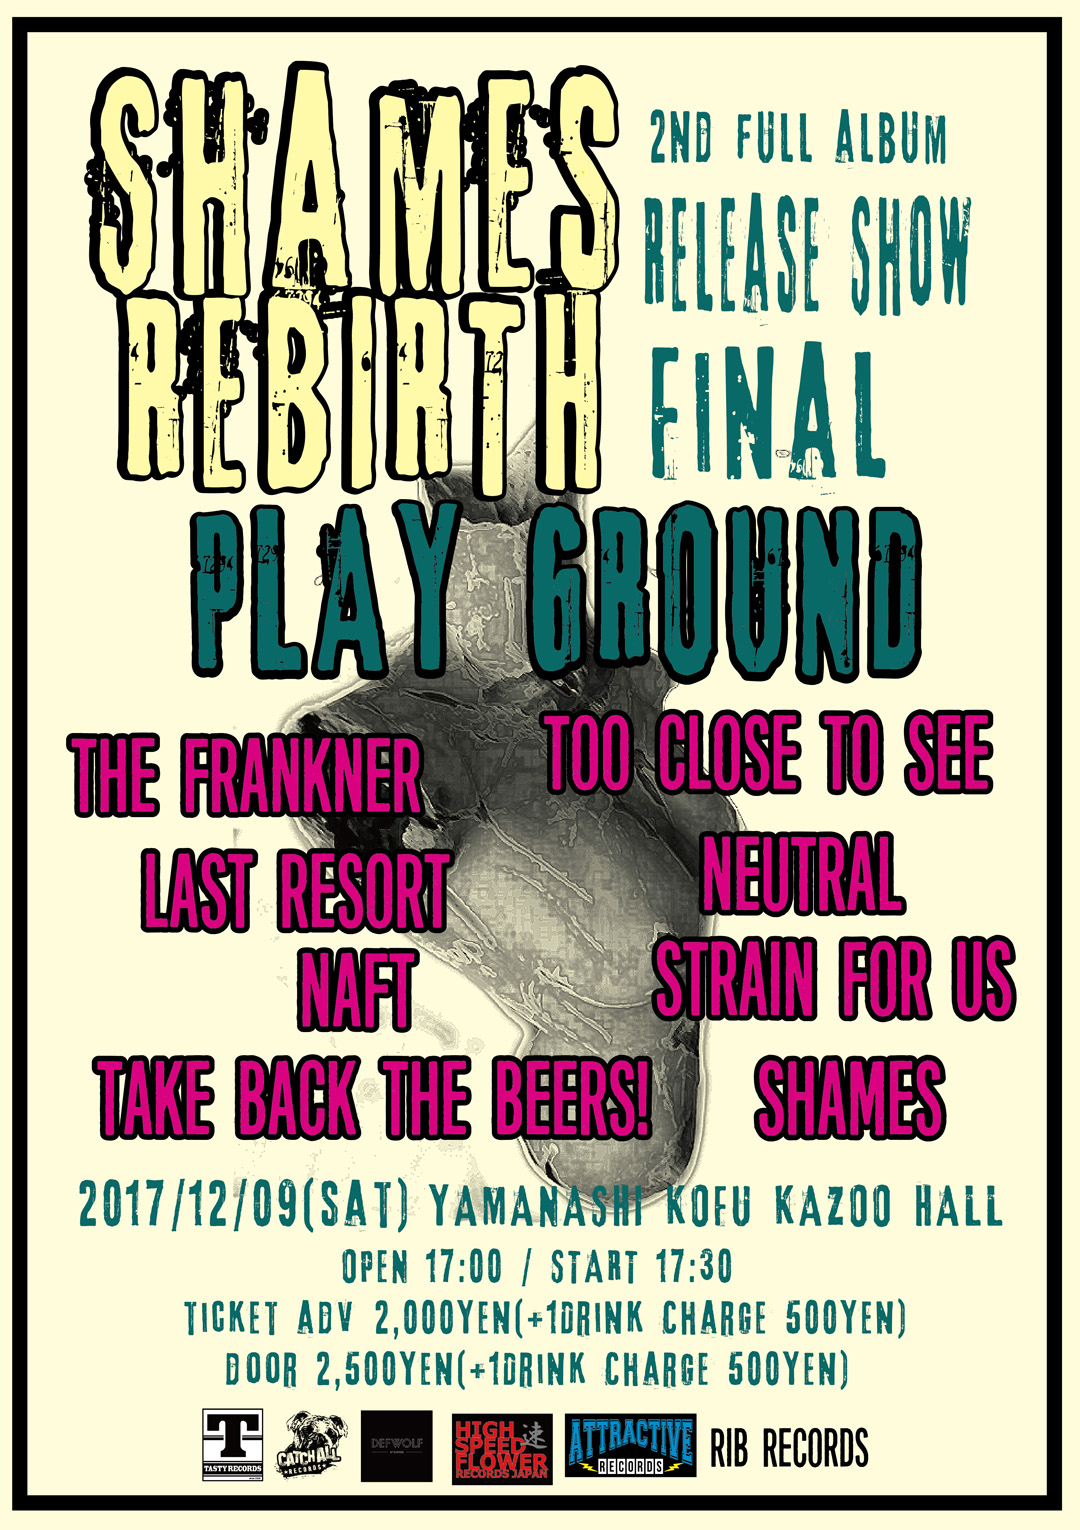 PLAY GROUND REBIRTH FINAL